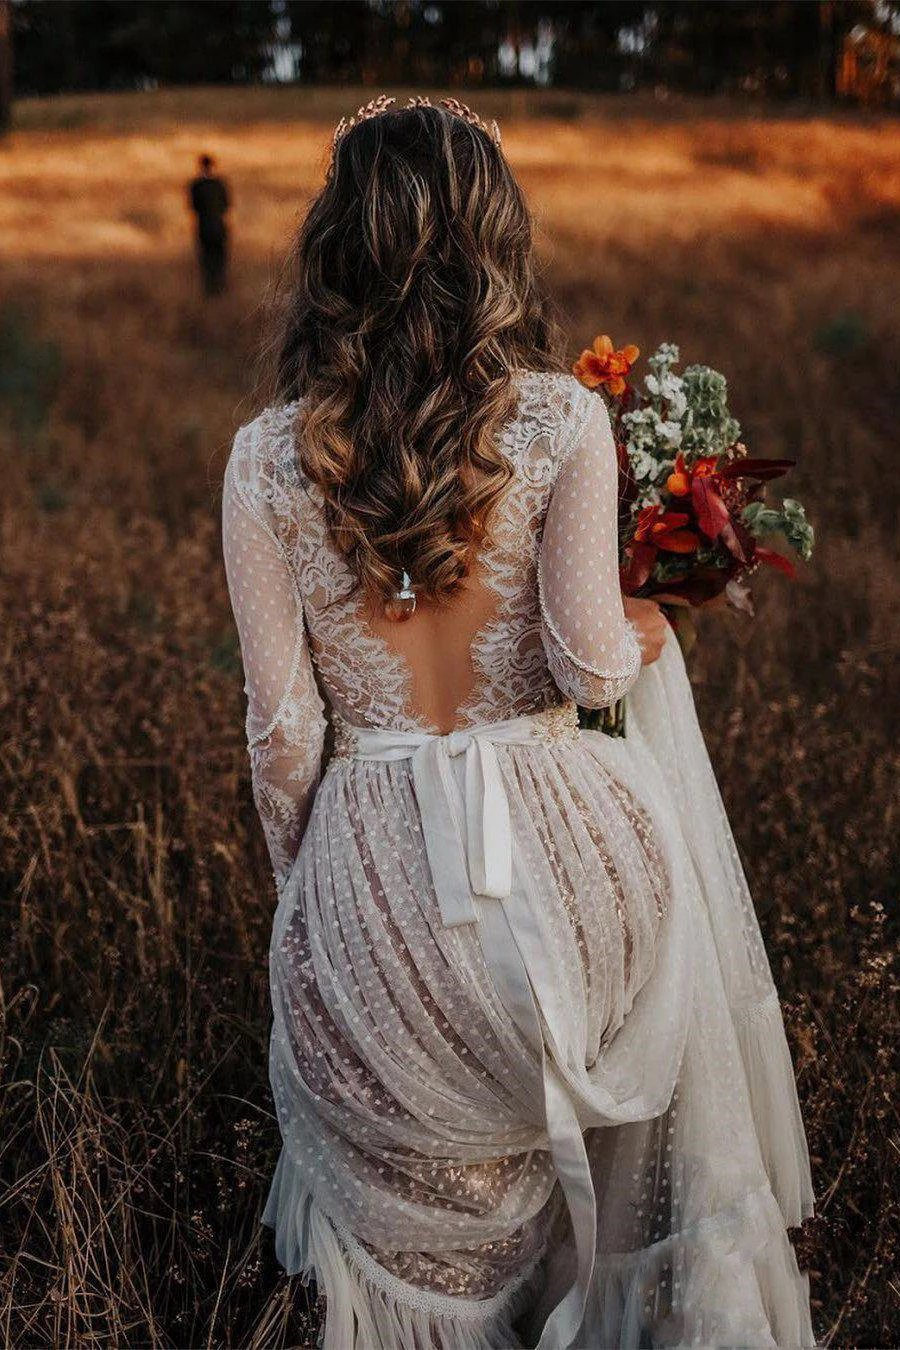 Lace Long Sleeve Polka Dot Bridal Gown Rustic Wedding Dress PW86